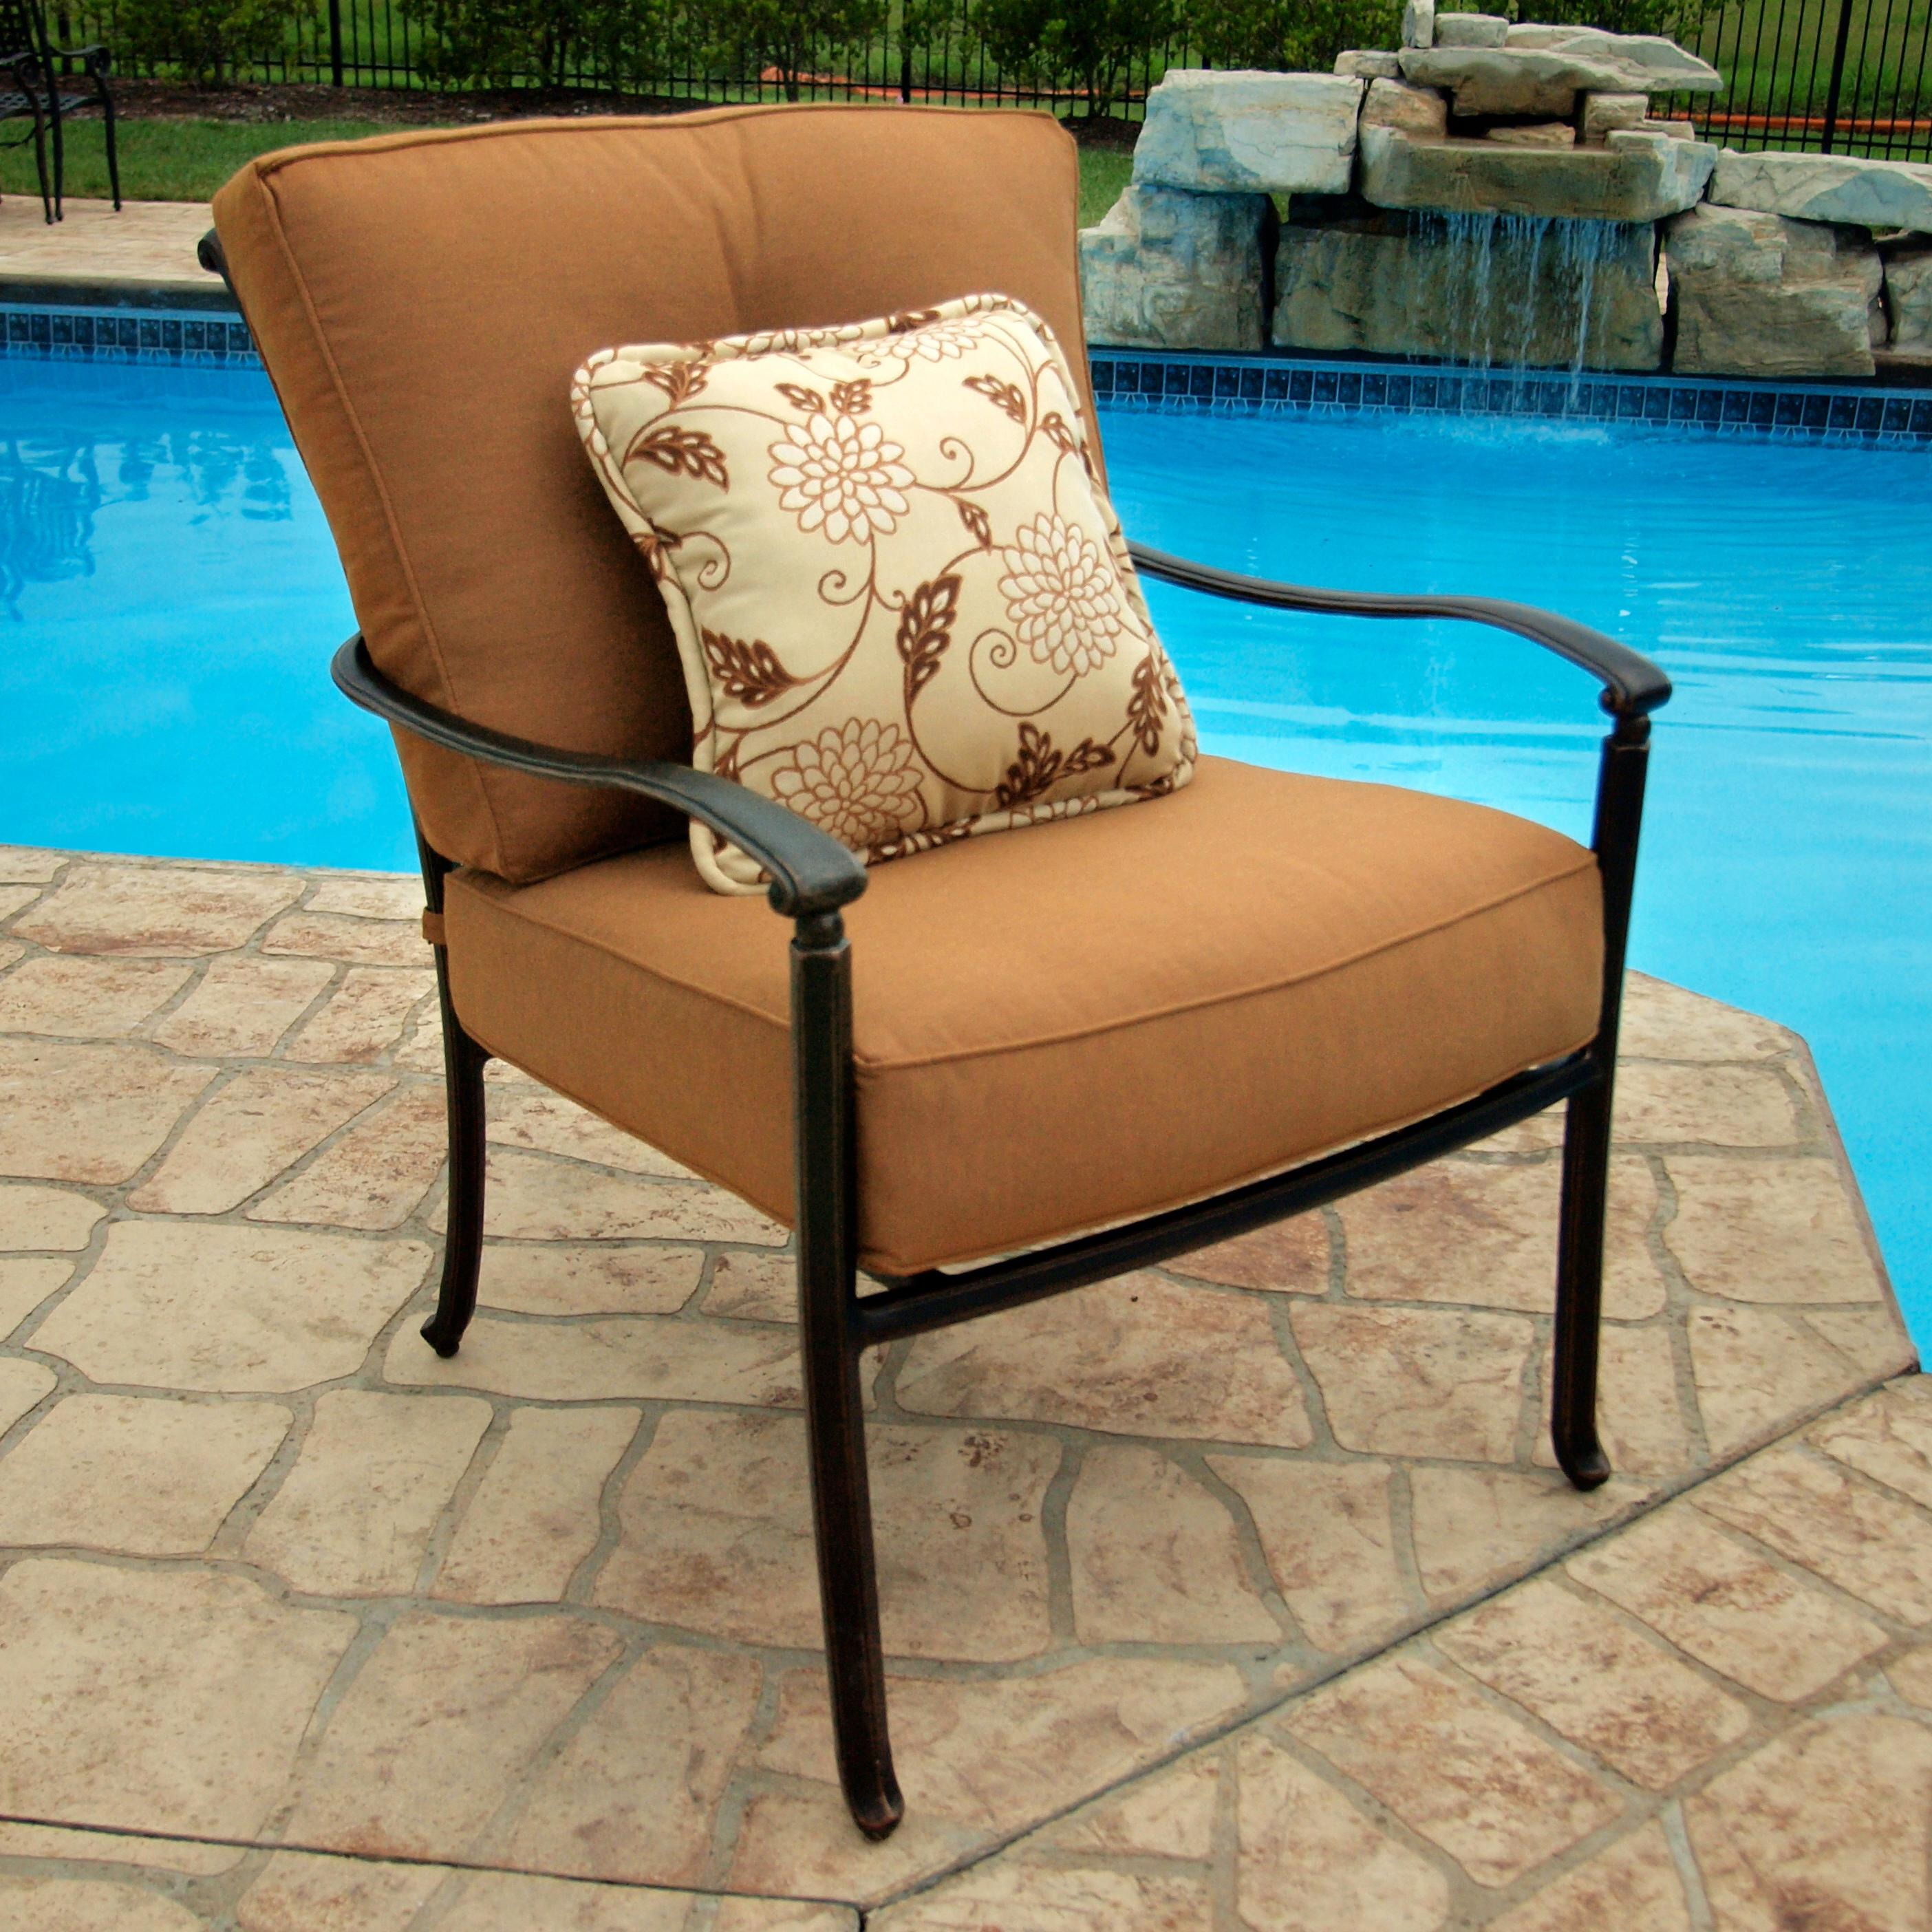 Agio Willowbrook Patio Furniture.Agio Willowbrook Deep Seat Alumicast Outdoor Lounge Chair With